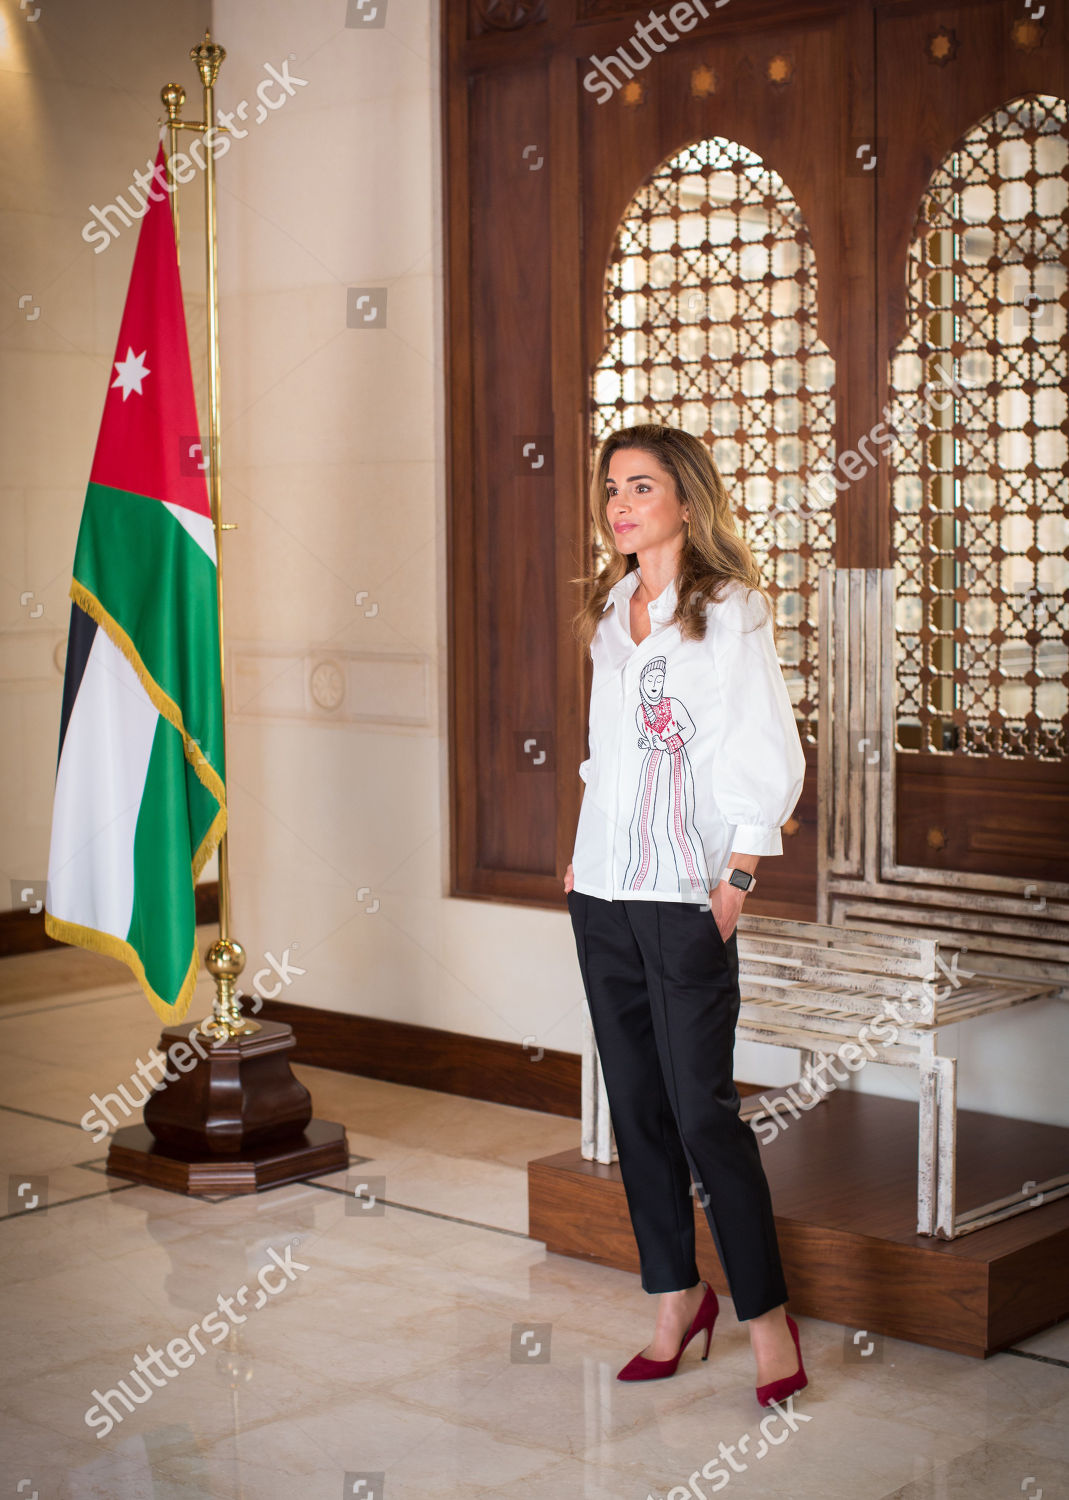 CASA REAL JORDANA - Página 11 Queen-rania-meets-with-female-artisanal-food-producers-amman-jordan-shutterstock-editorial-9855869b